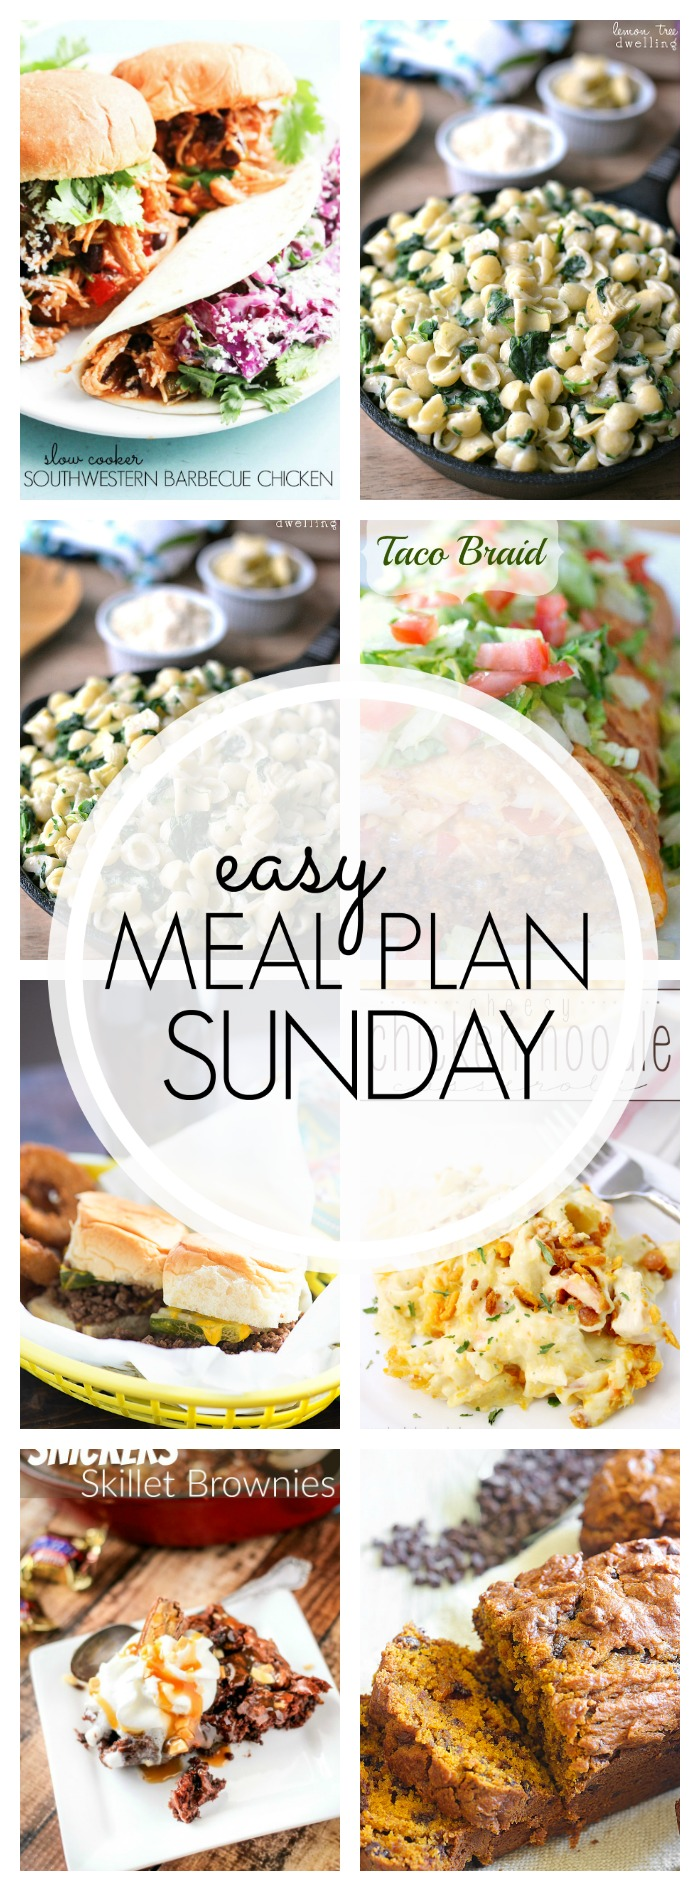 Easy Meal Plan Sunday #65